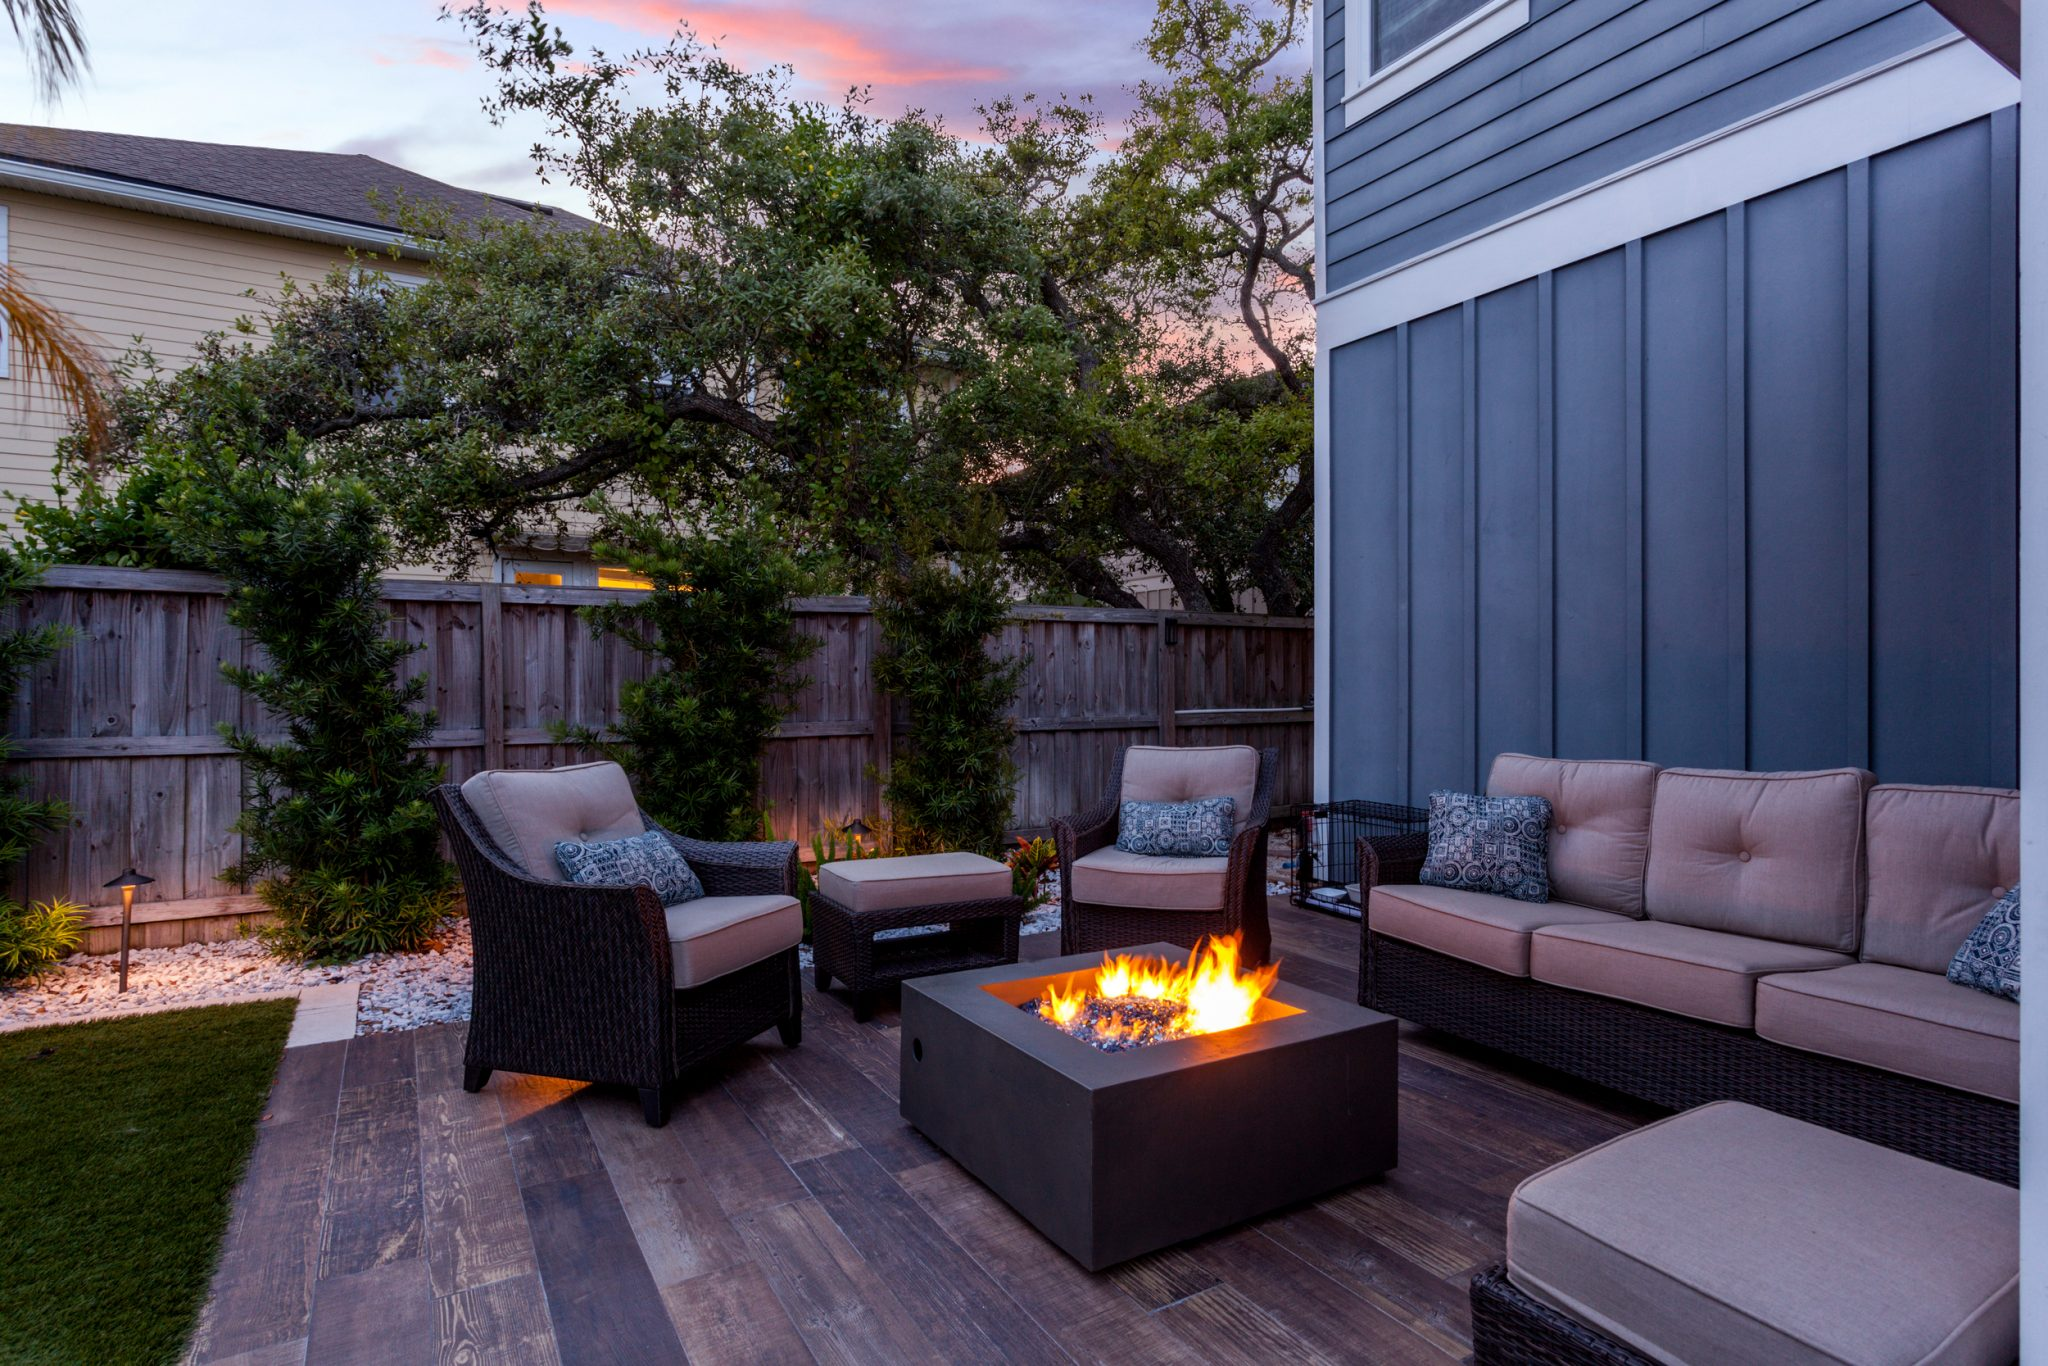 Quarantine DIY Home Improvement Projects Fire Pit